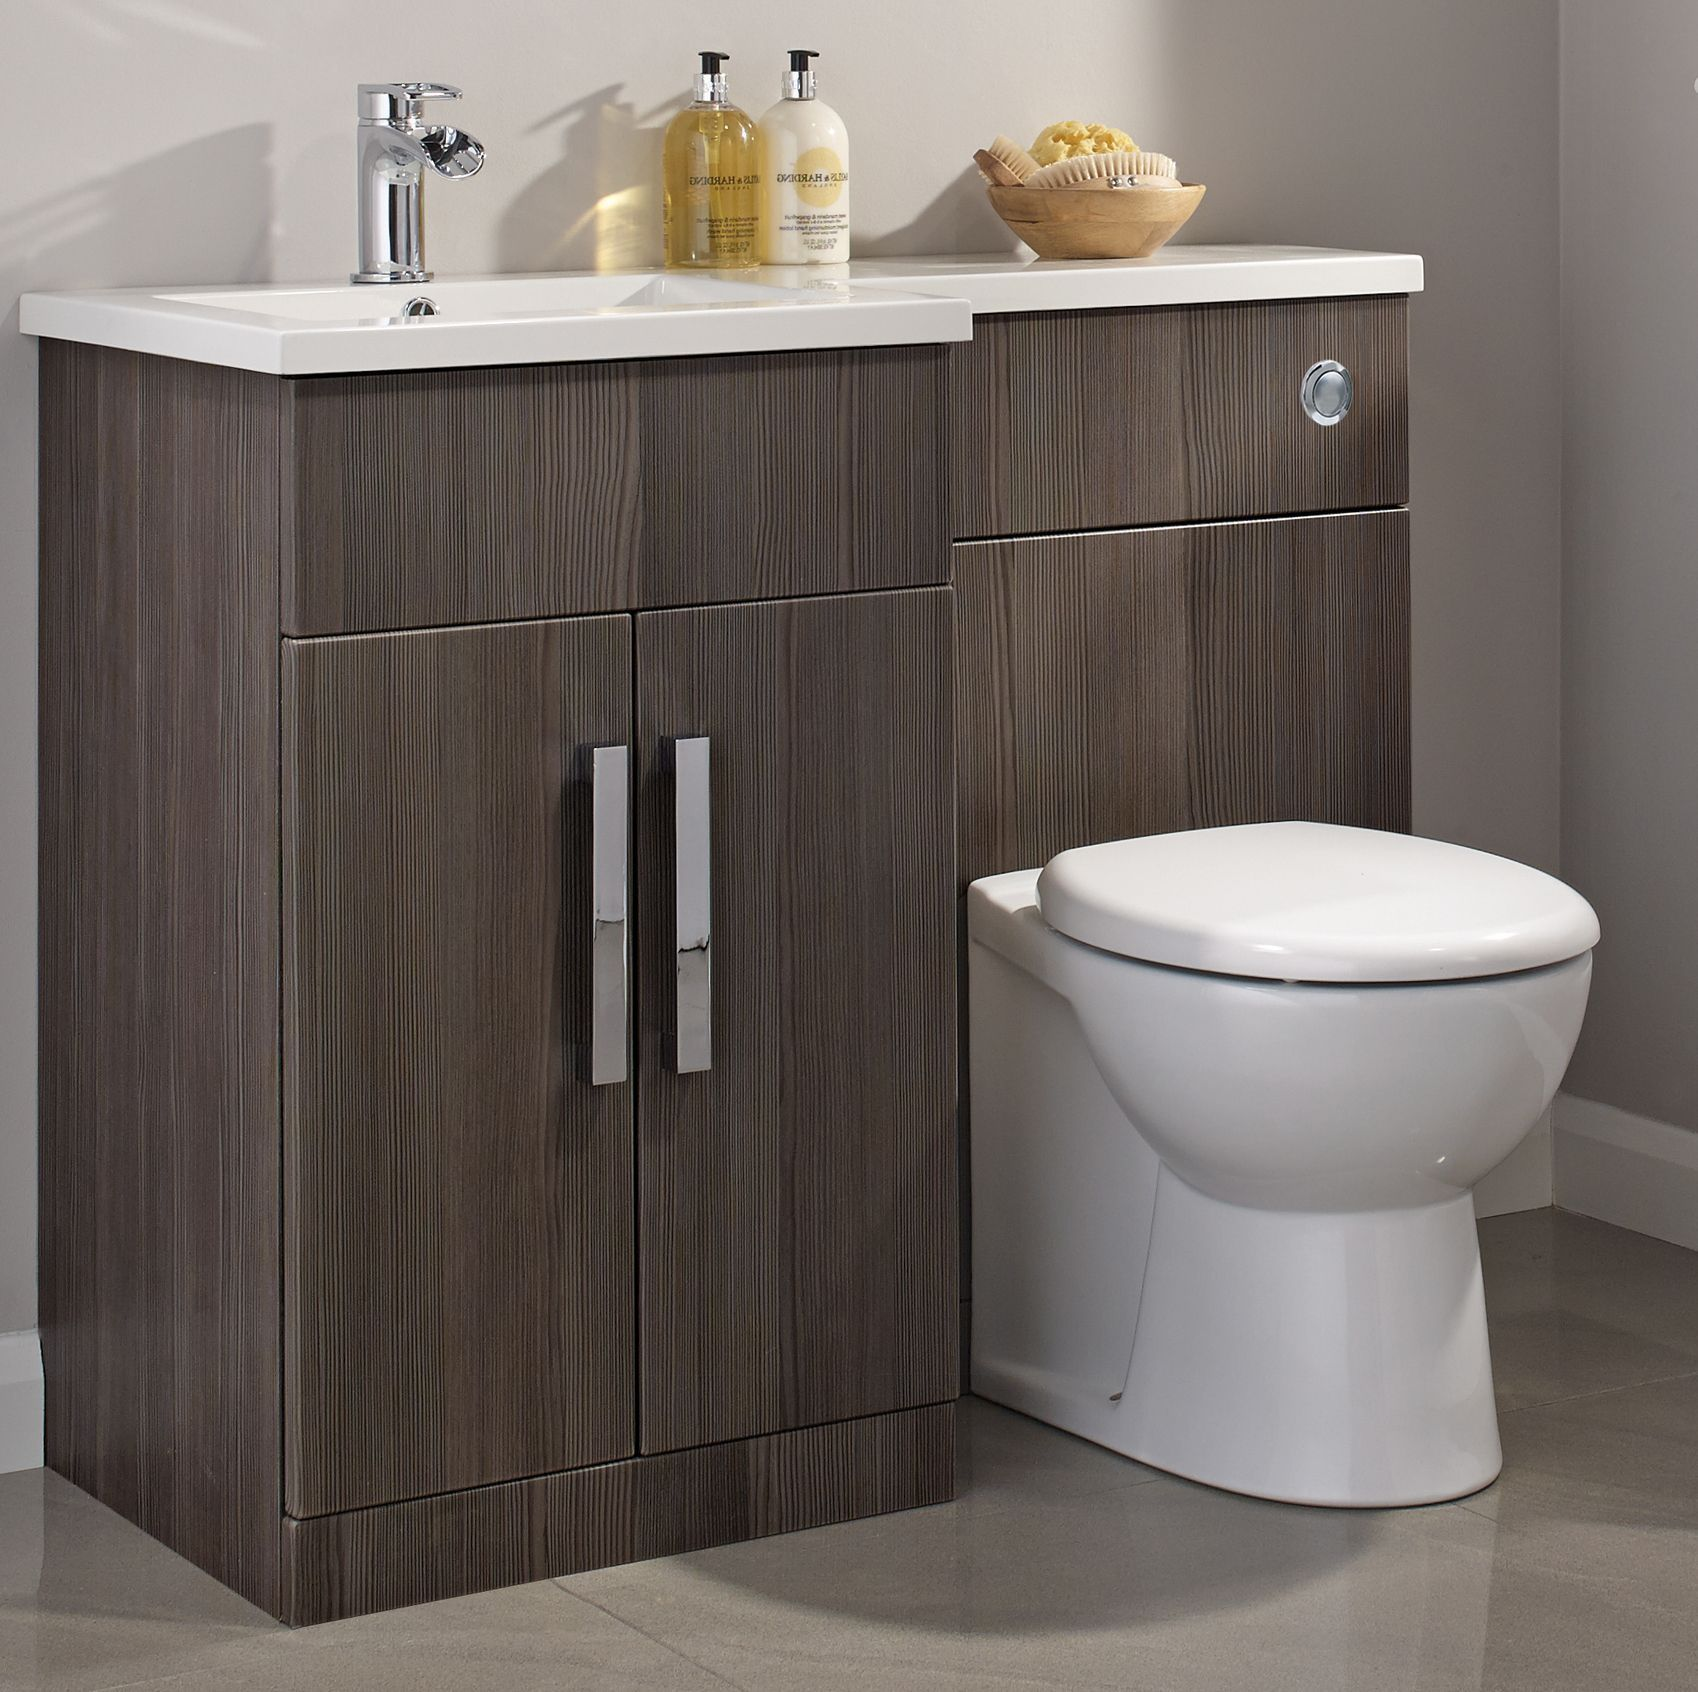 cooke lewis ardesio bodega grey lh vanity toilet pack. Black Bedroom Furniture Sets. Home Design Ideas